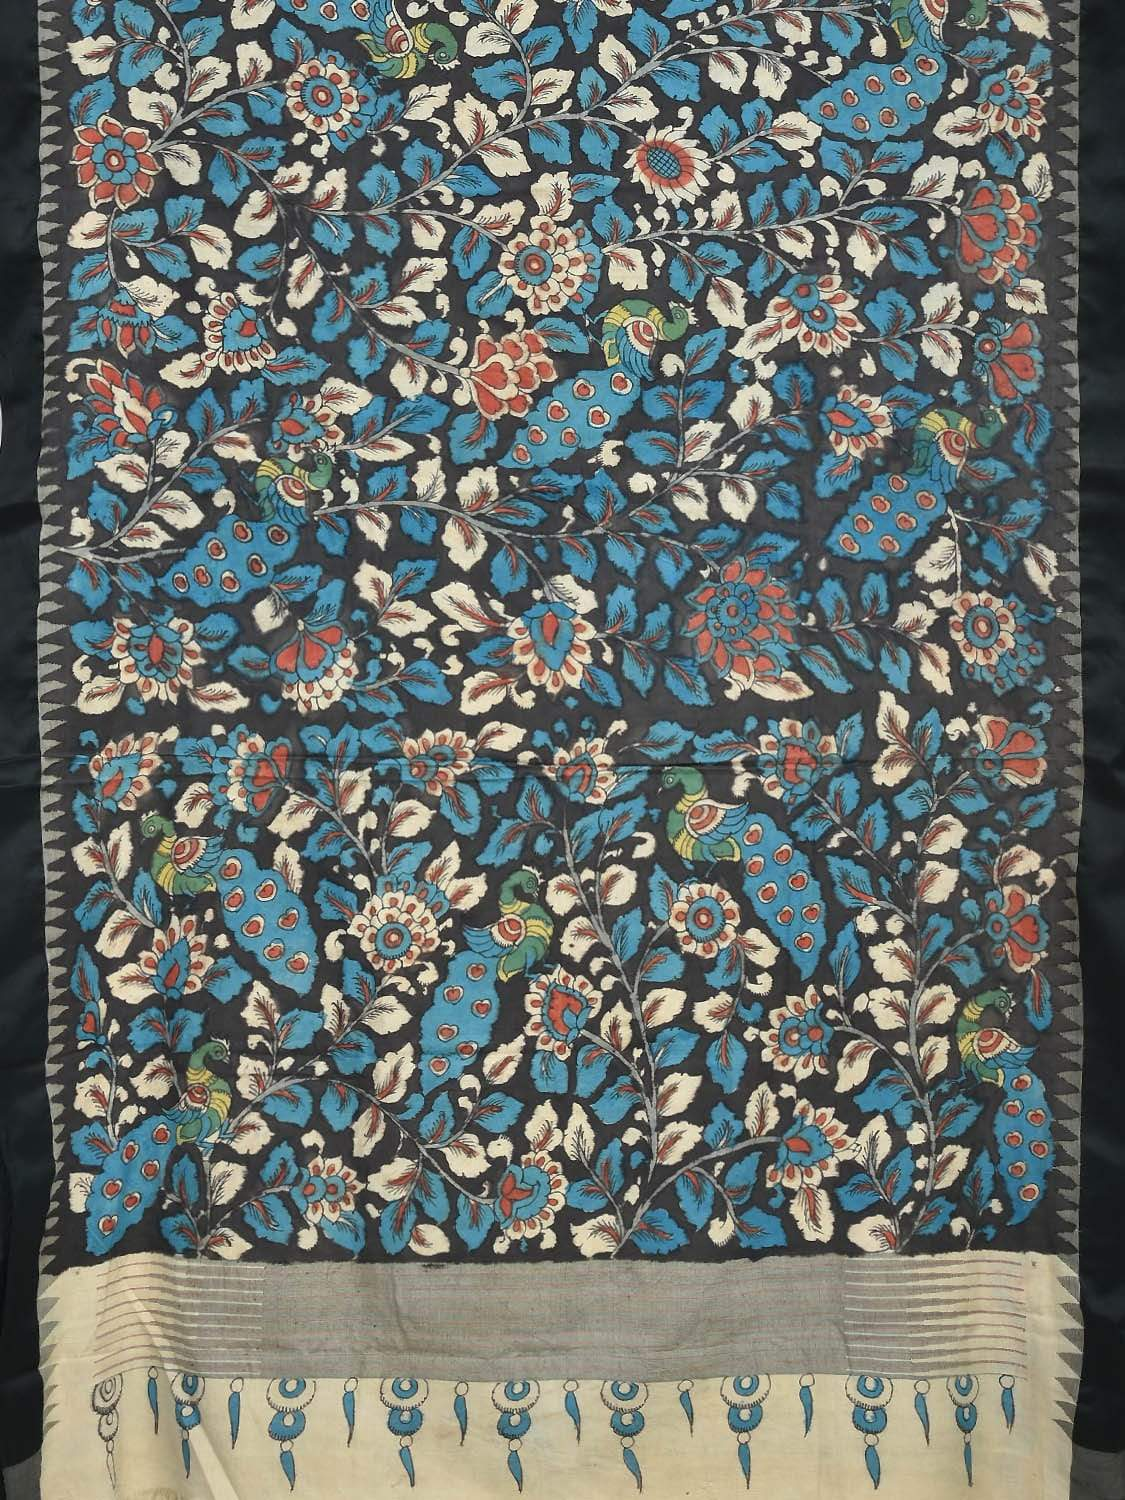 Black and Blue Kalamkari Hand Painted Kanchipuram Silk Handloom Saree with Flowers and Peacocks Design KL0188